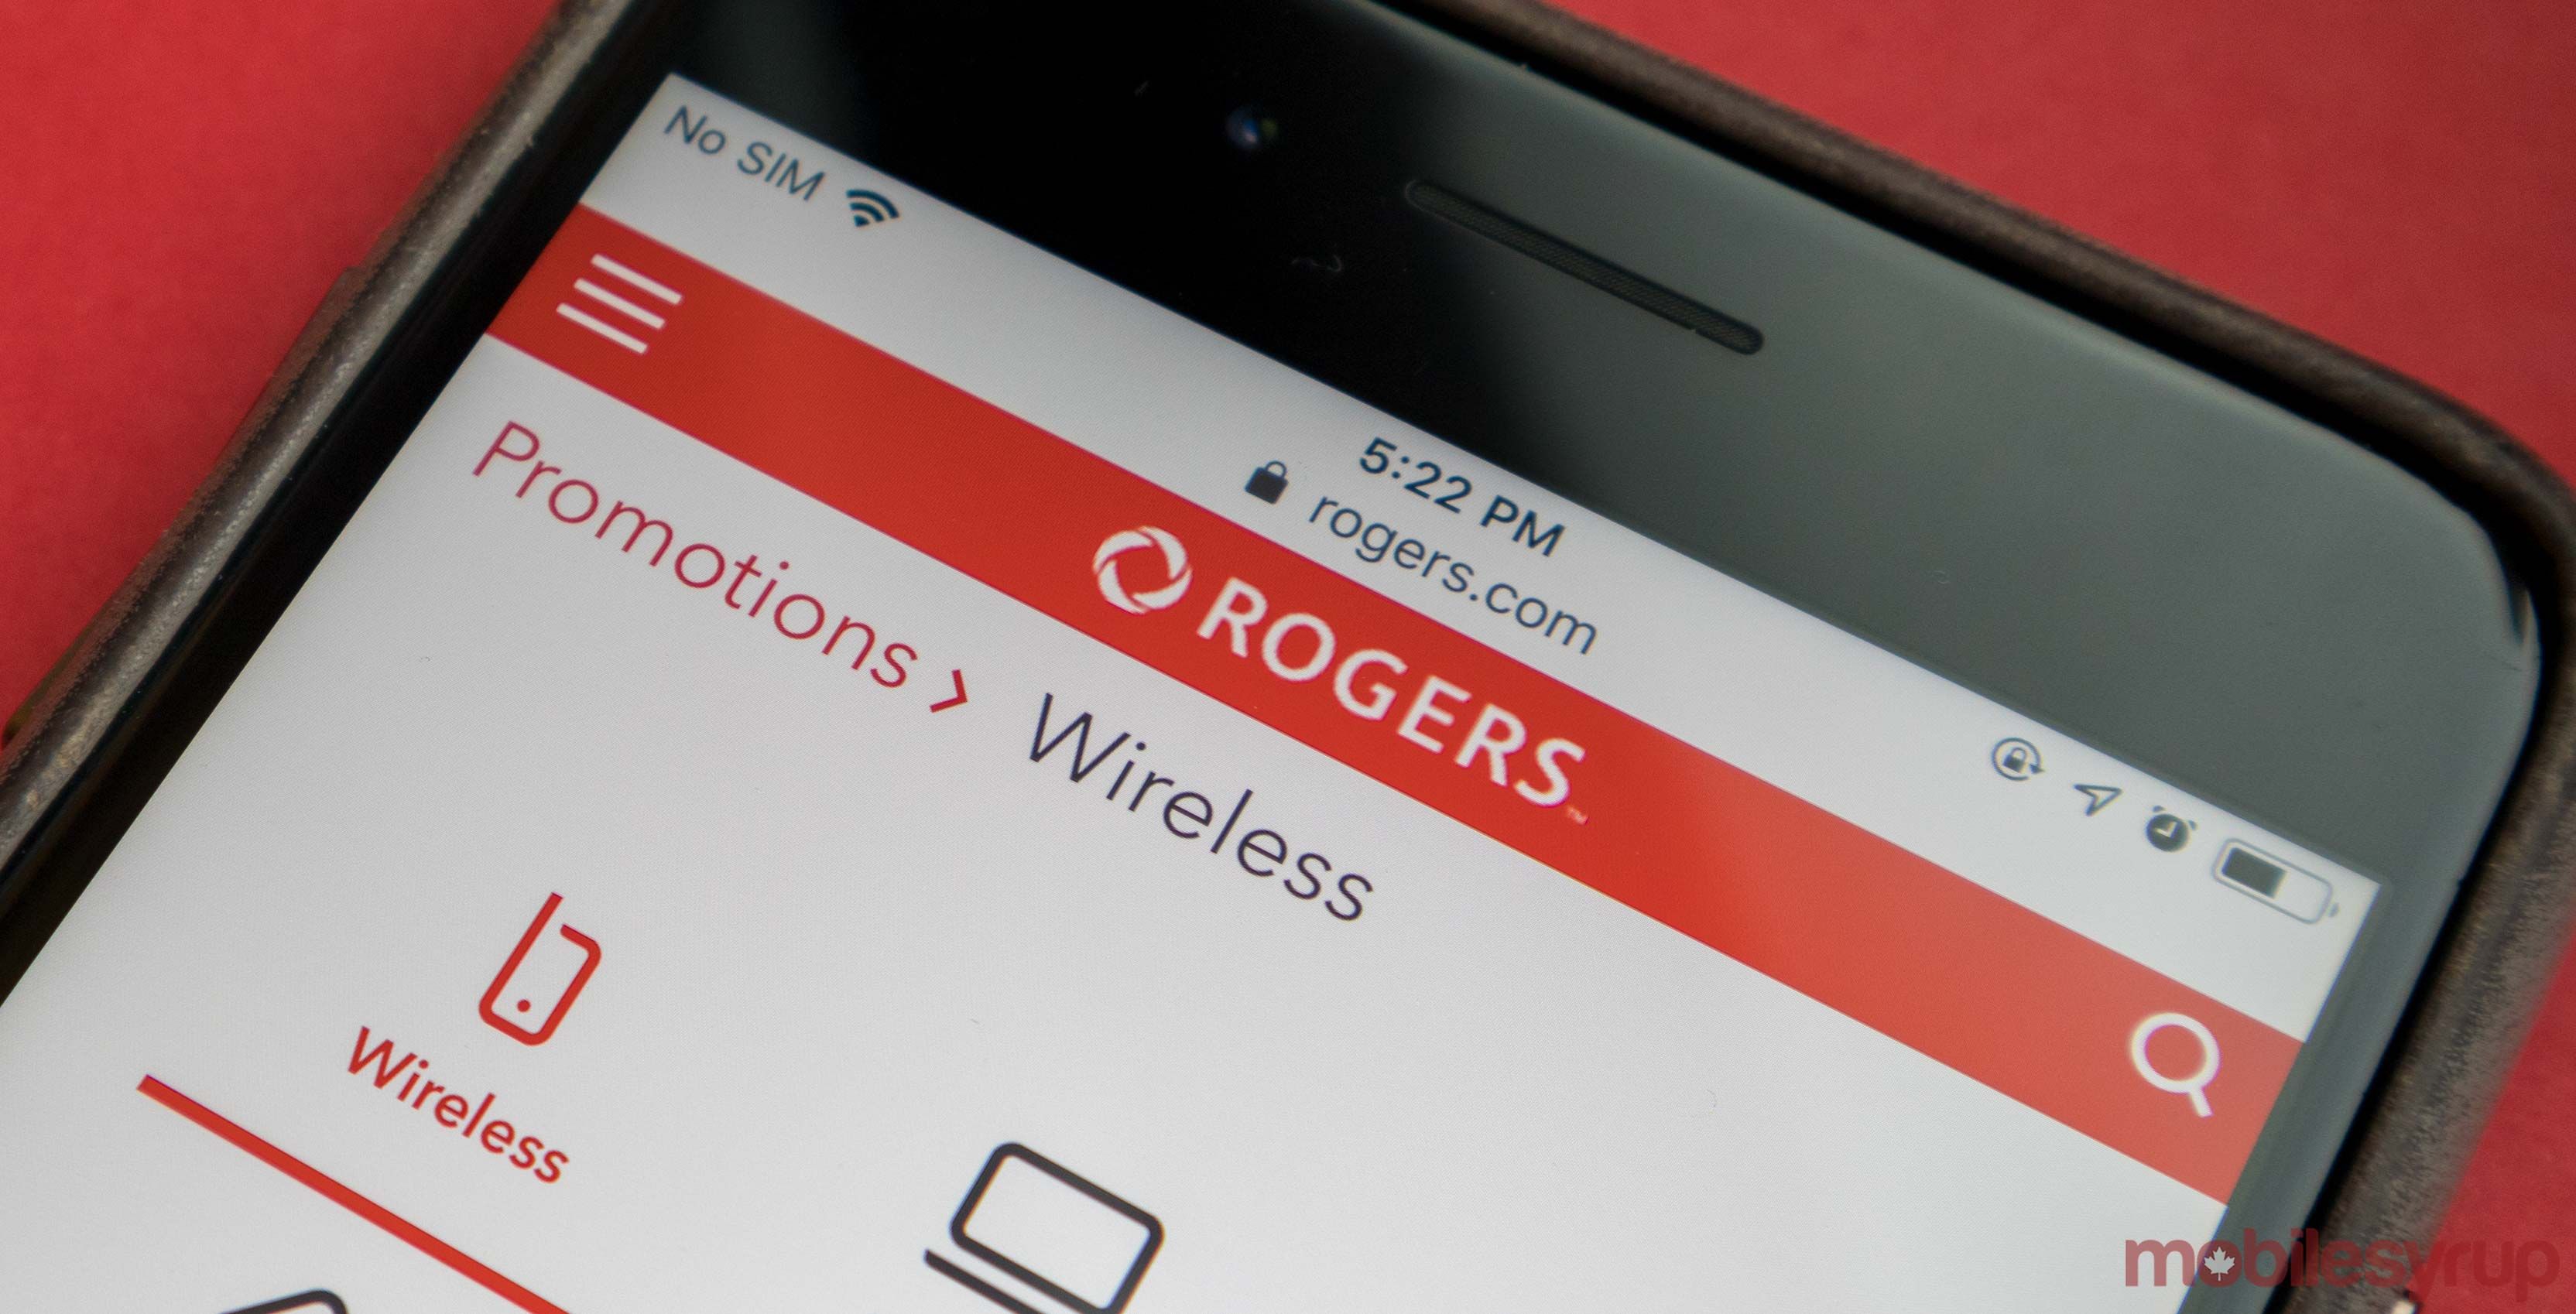 Black Friday Rogers Mobile Rogers Calling Ex Customers To Offer 10gb Plans For 70